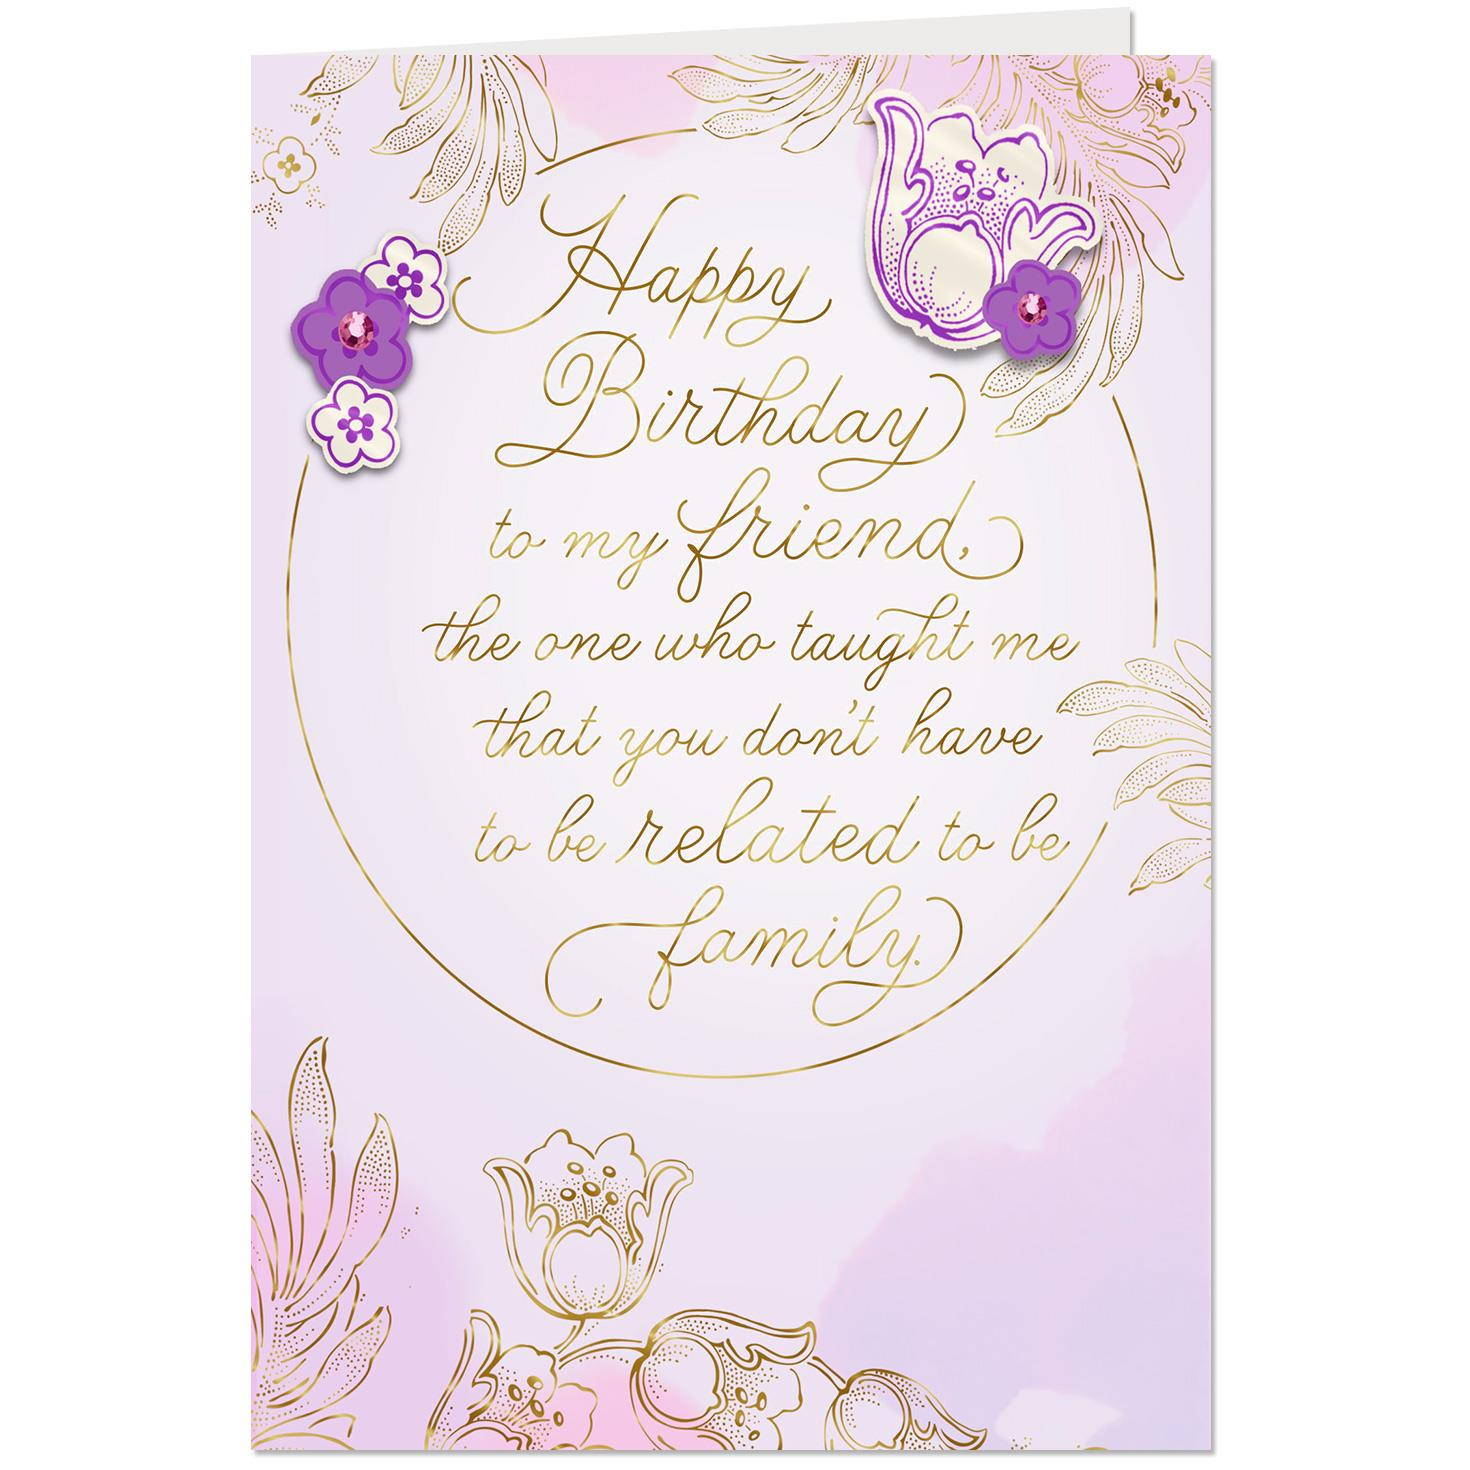 Youre Like Family Birthday Card For Friend